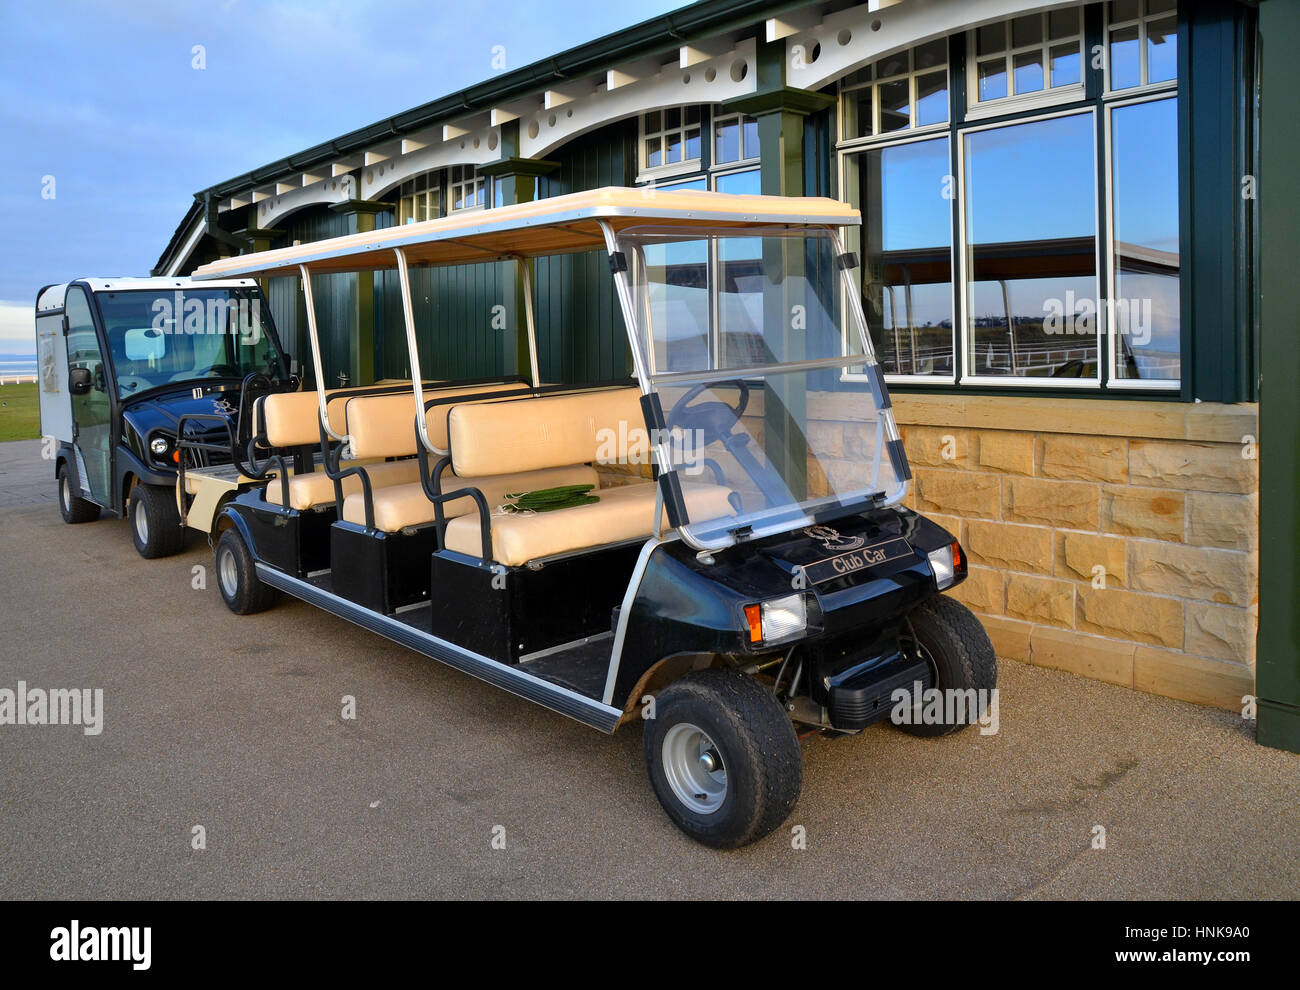 Multi Seater Club Cars Of The Old Course Of St Andrews Gold Club